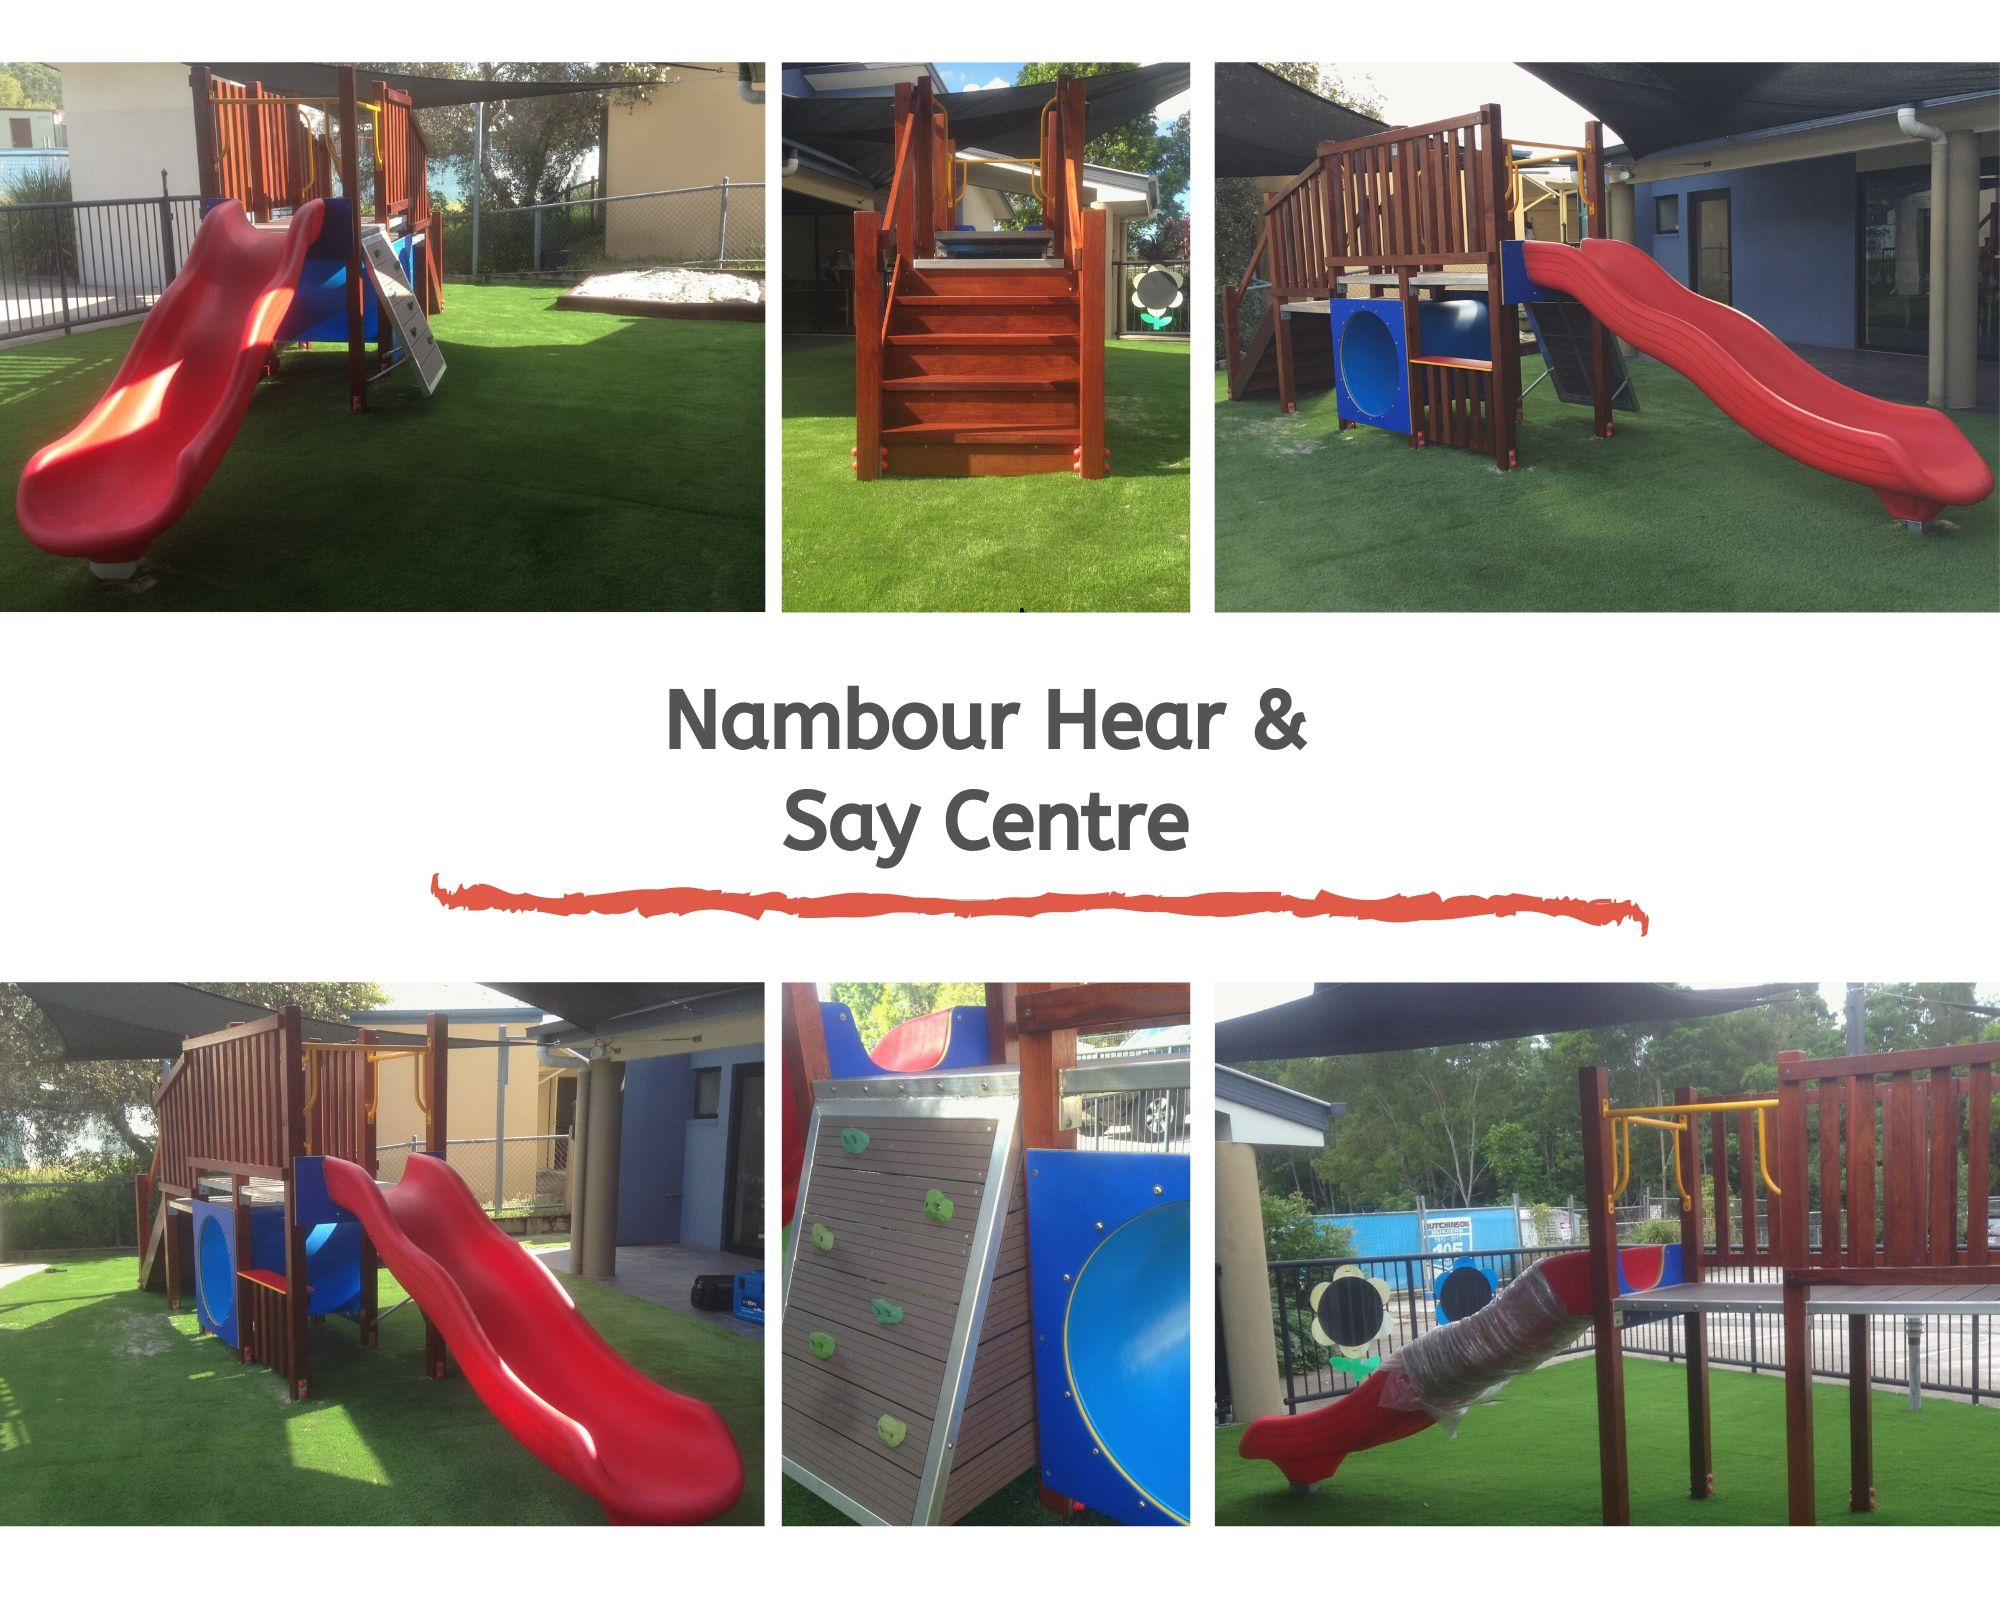 Nambour Hear & Say Centre